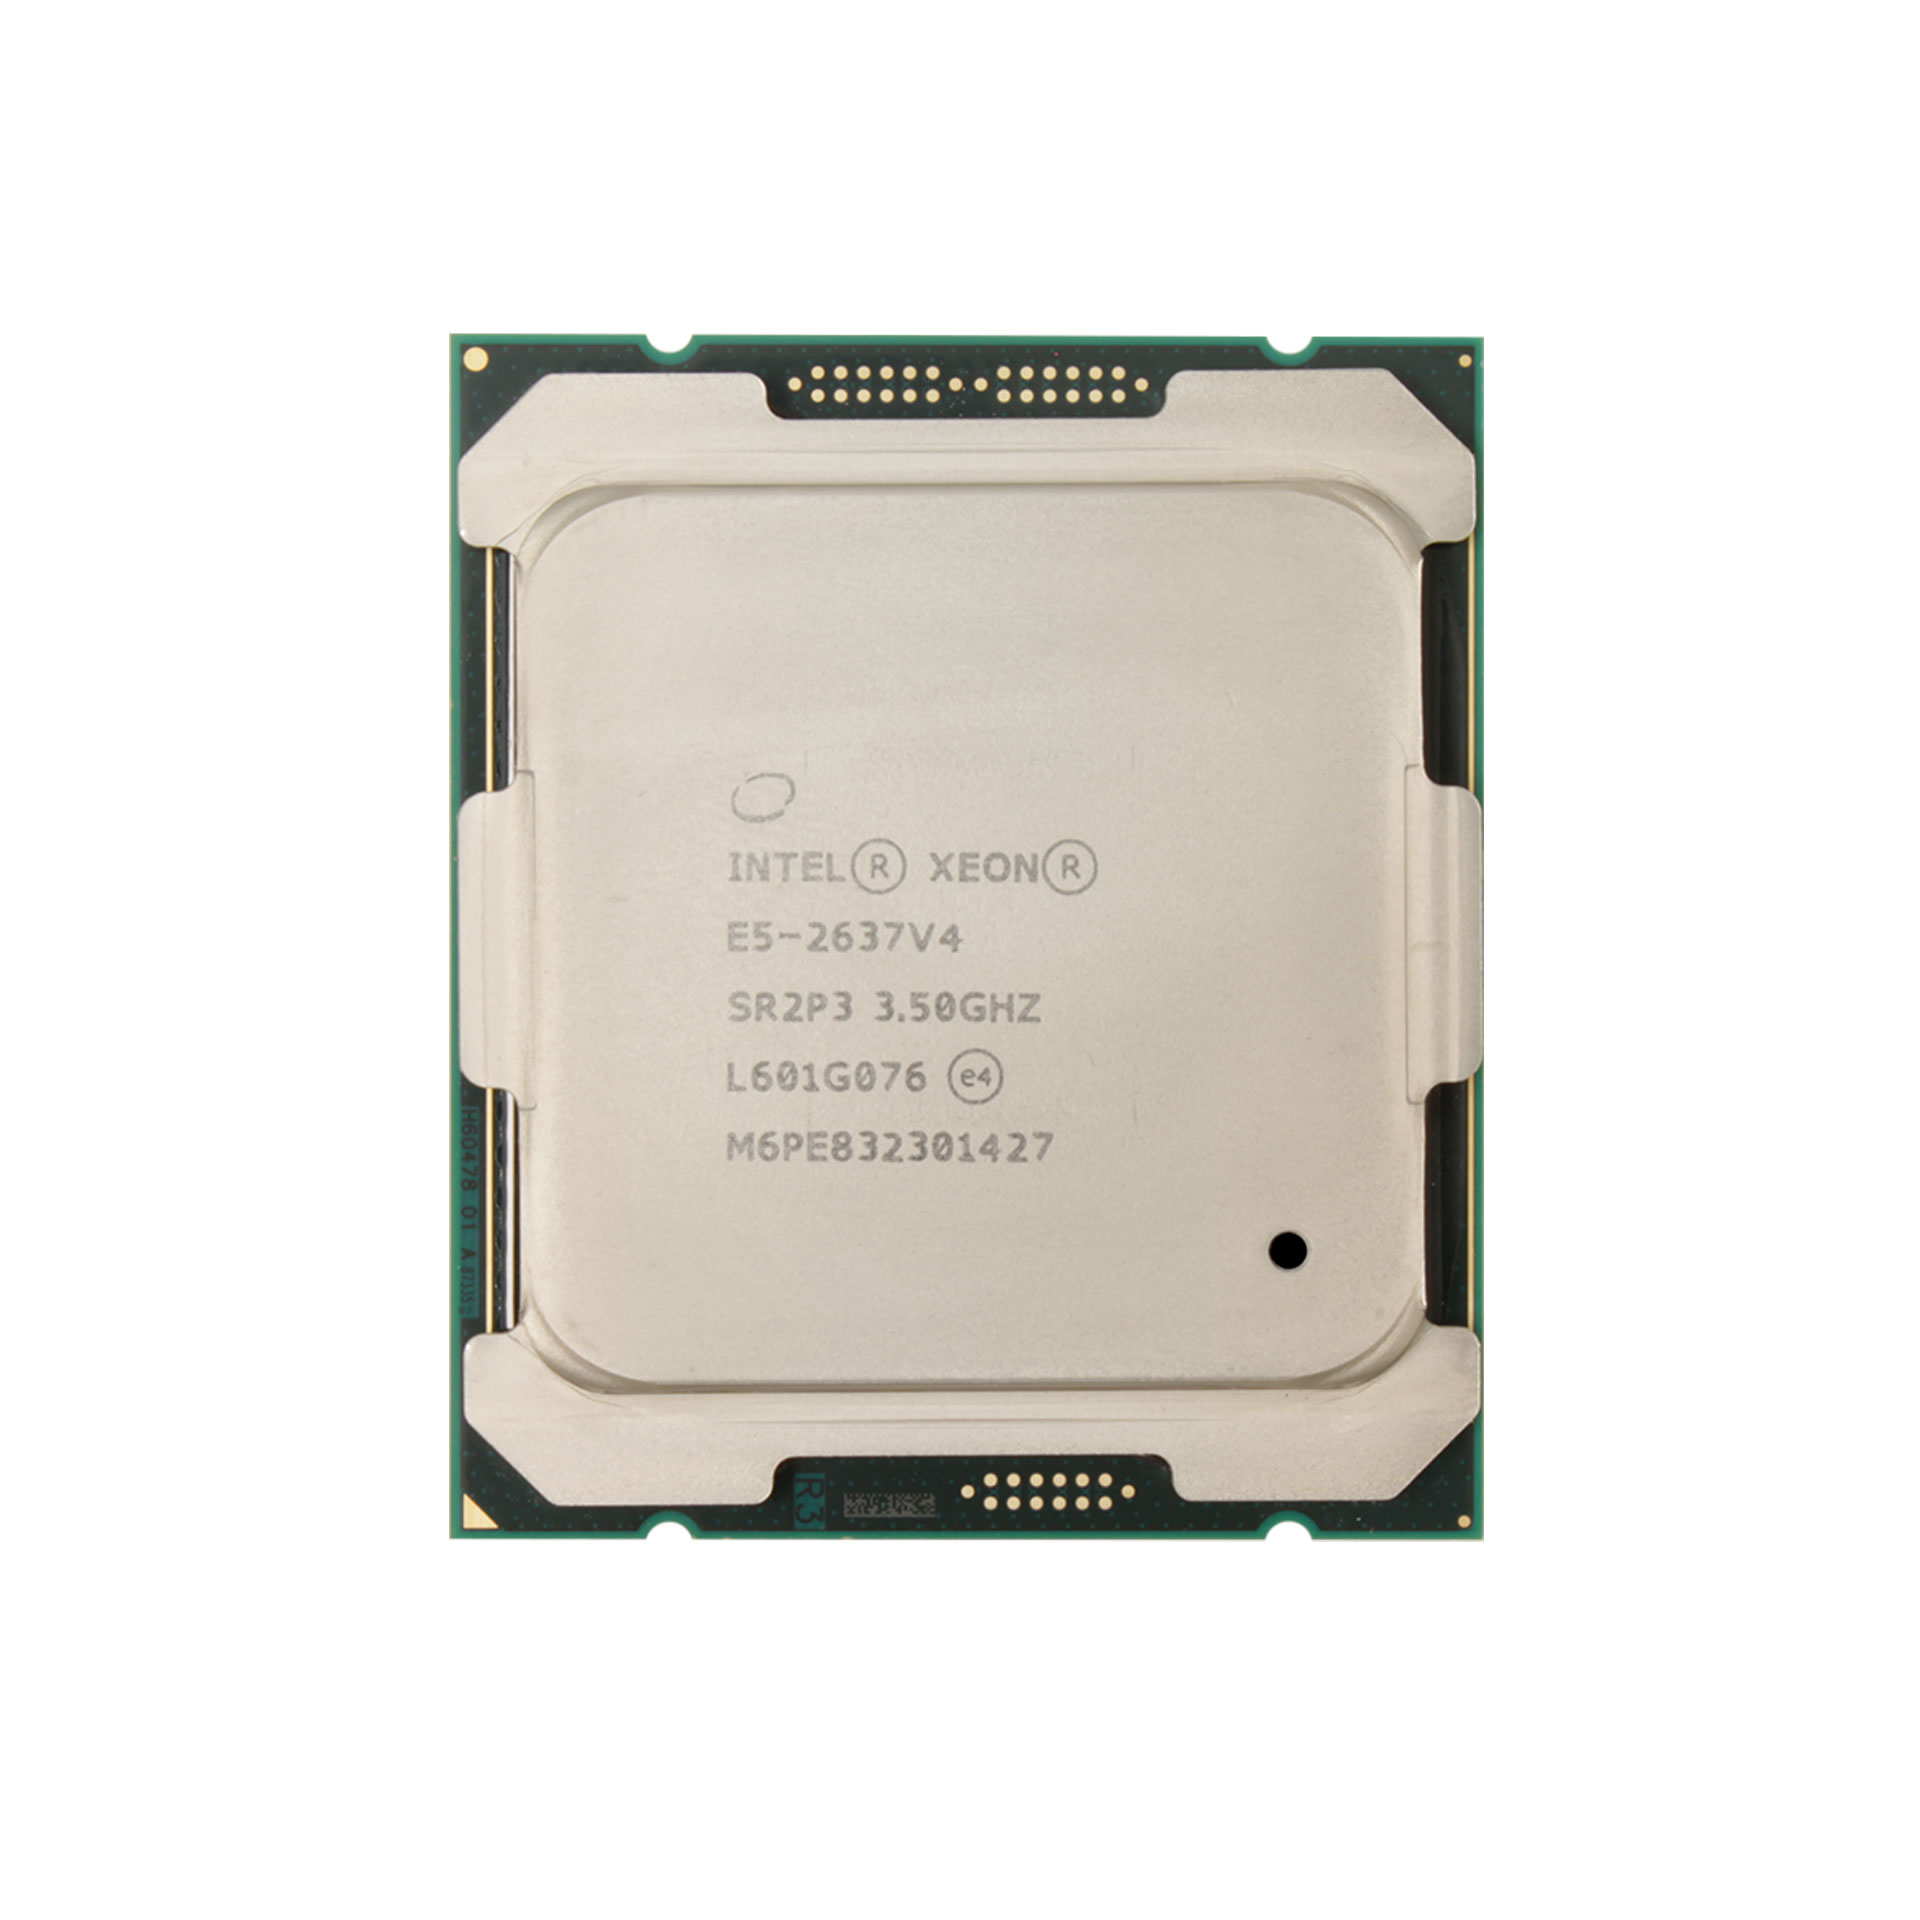 Intel E5-2637 v4 Xeon 3.5GHz Quad Core Processor CPU SR2P3 15MB